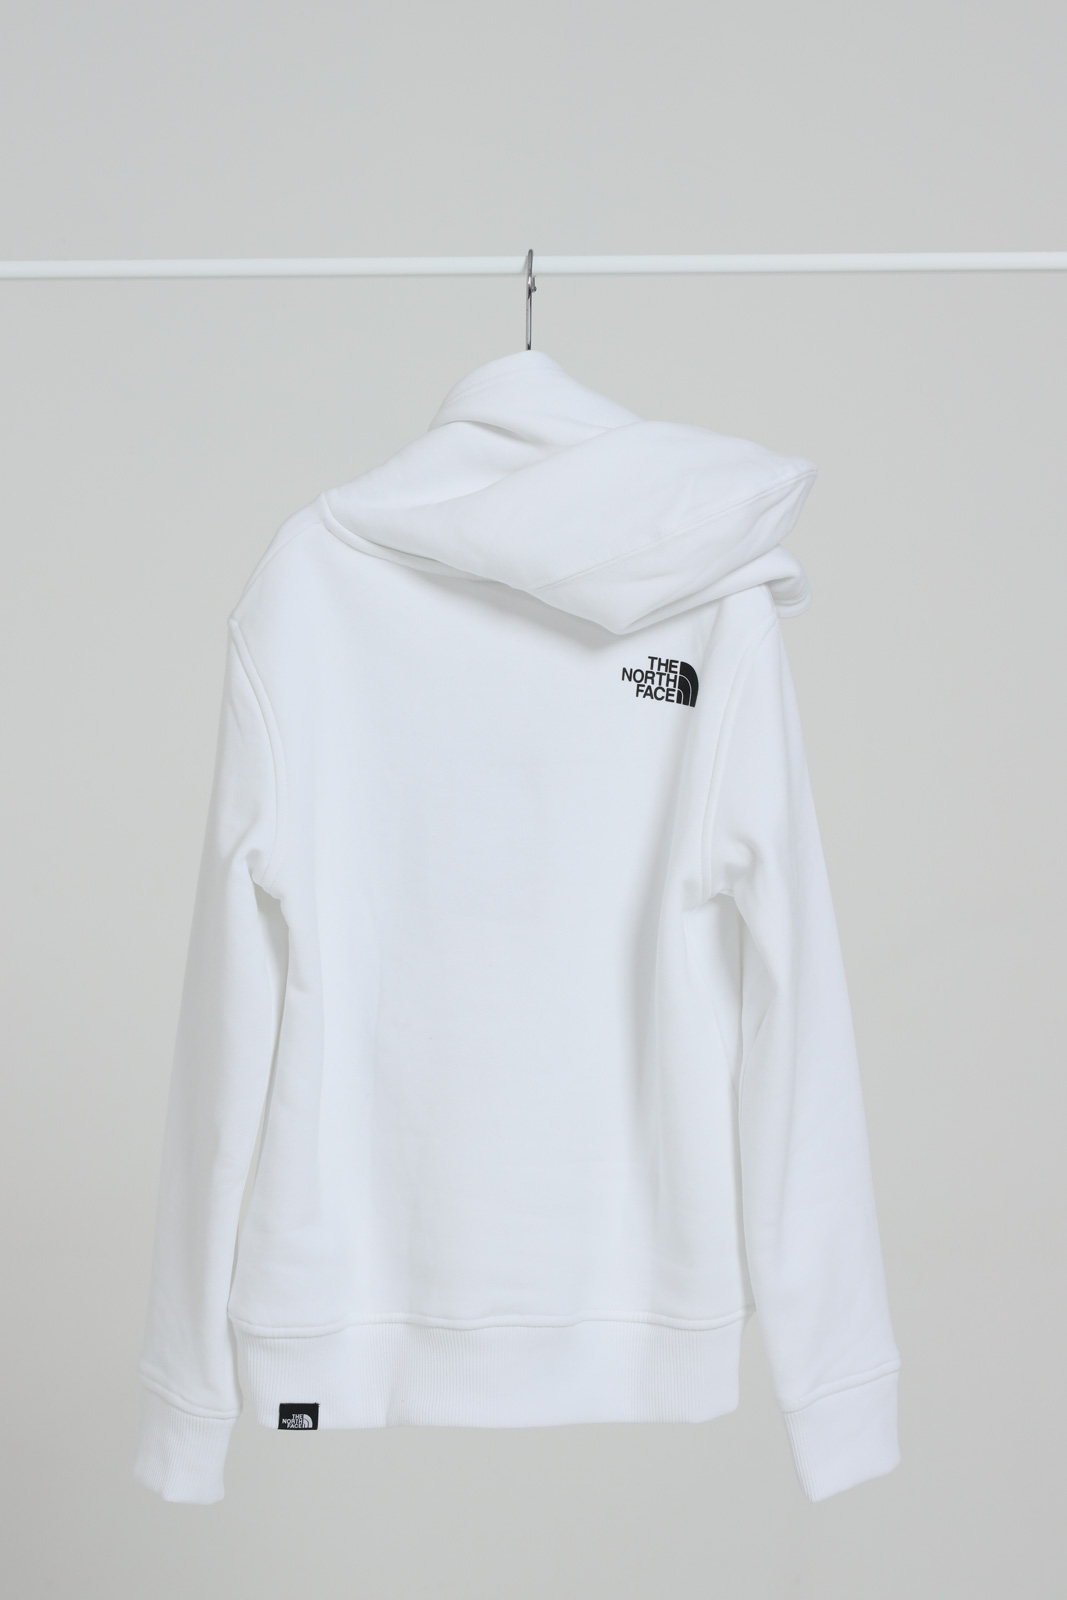 THE NORTH FACE | Sweatshirt | NF0A4MA5FN41FN41